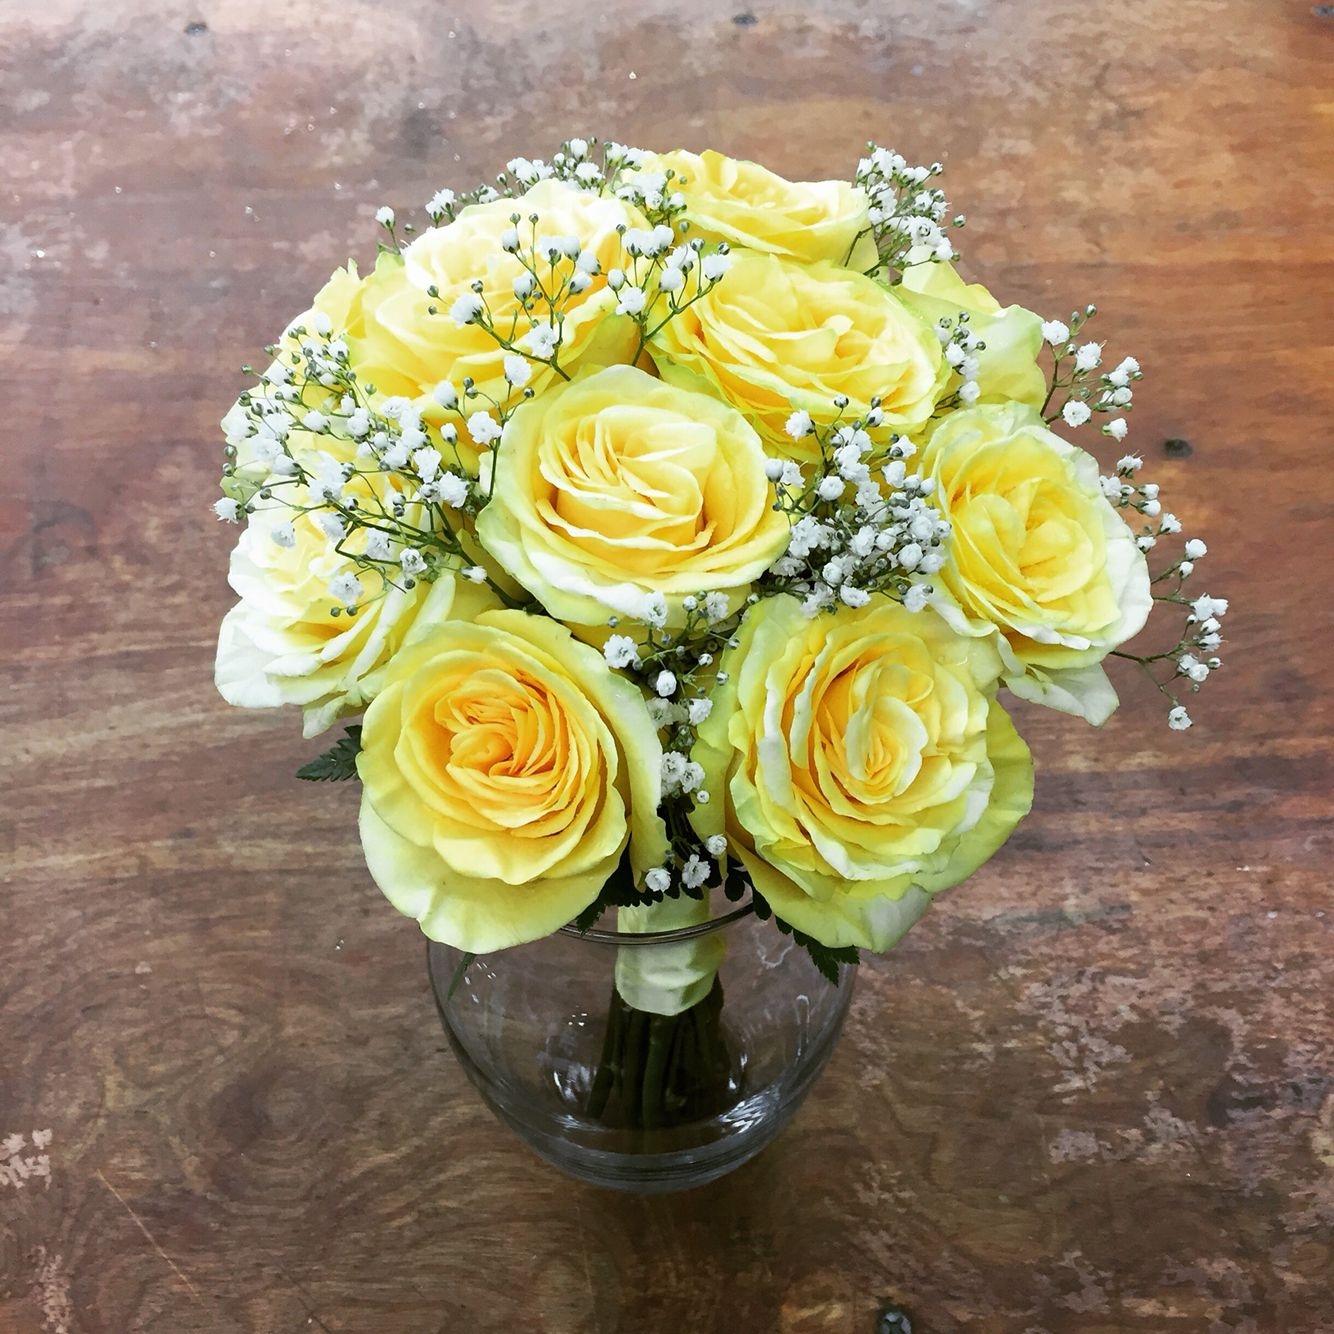 Yellow Wedding Flowers Ideas: Classic Yellow Rose Bridal Bouquet, Bride, Wedding Flowers